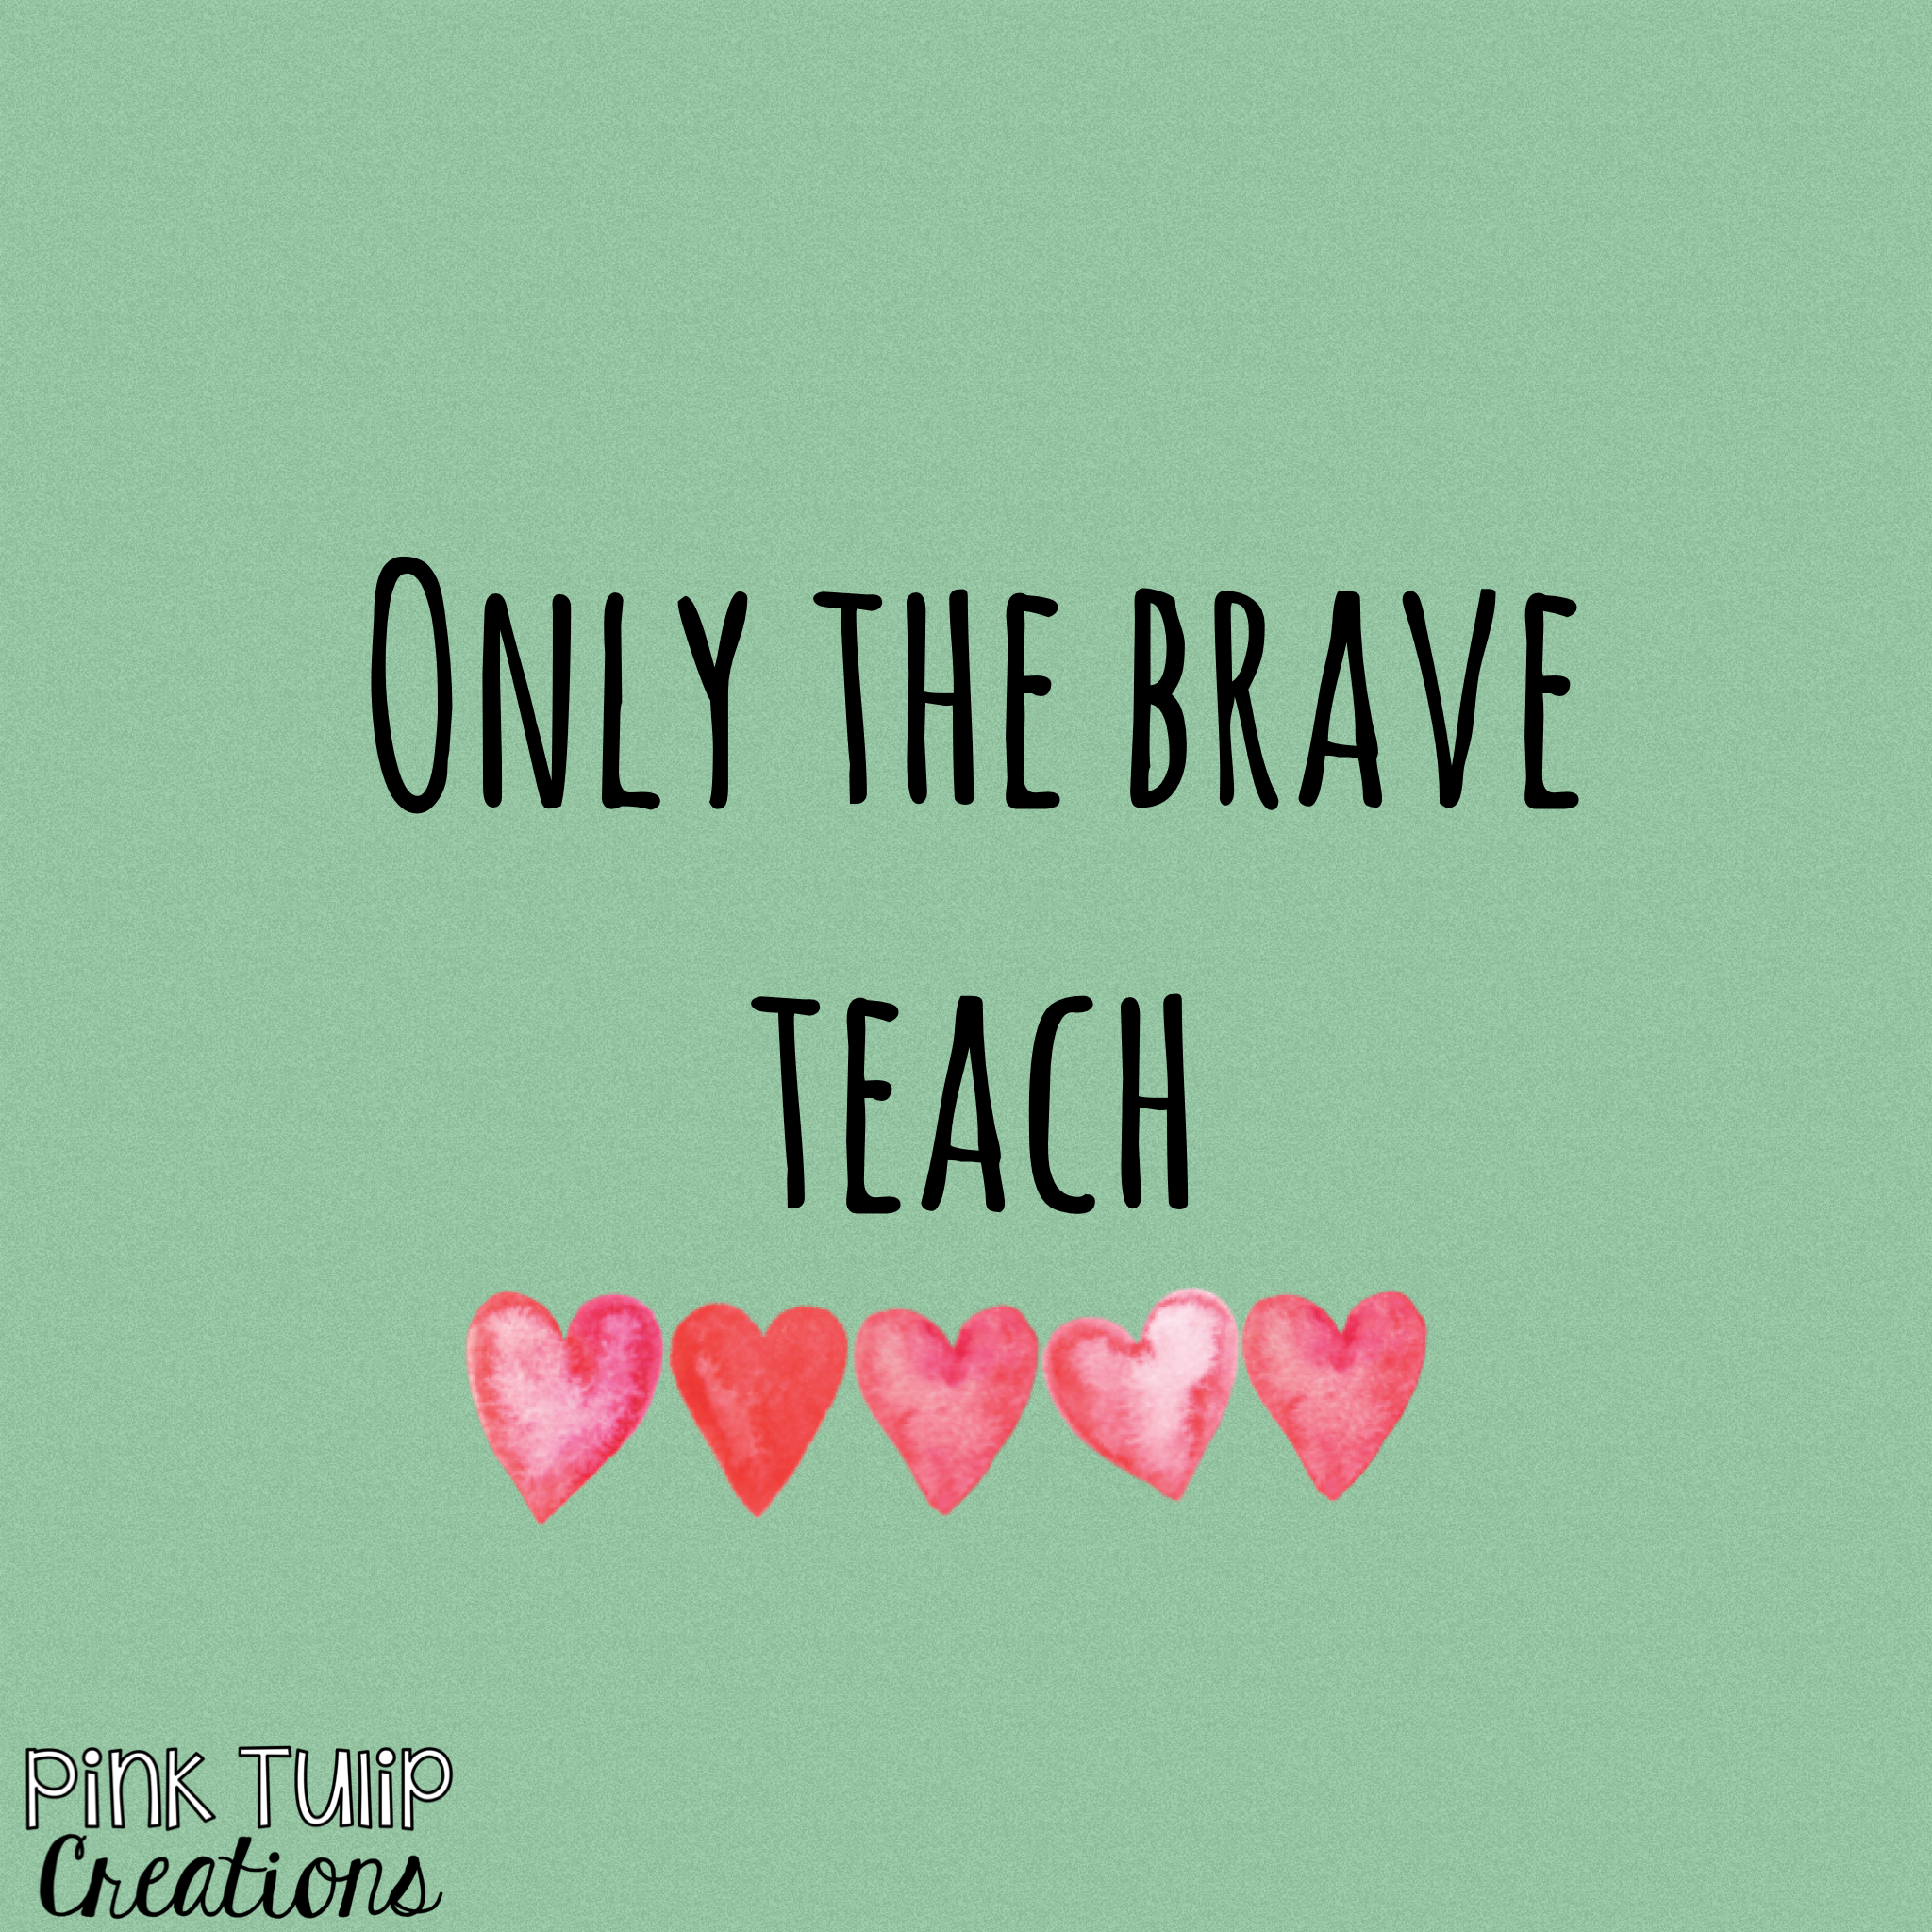 Quotes About Education Only The Brave Teachteaching Quotes Educational Education .